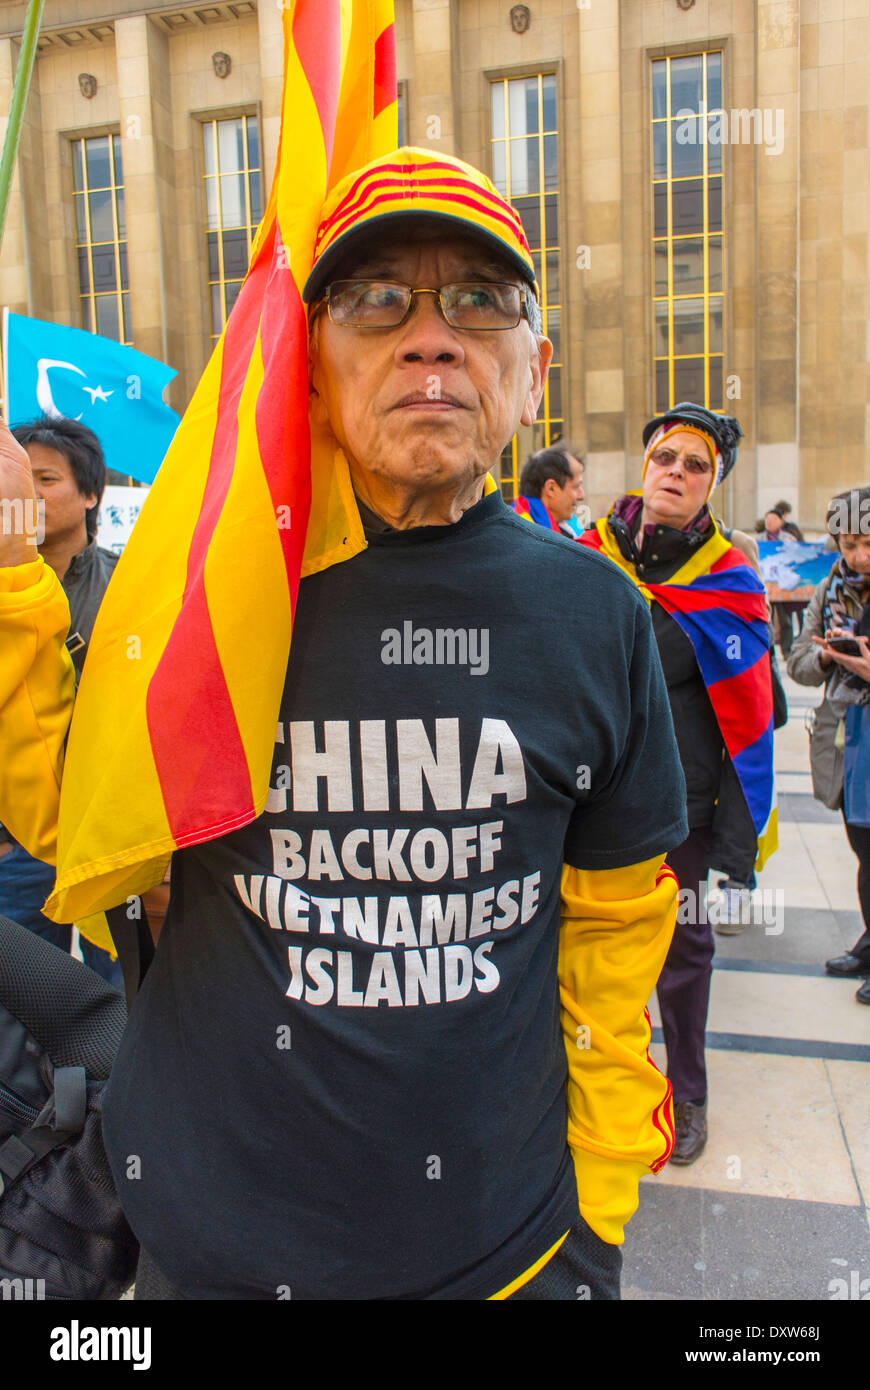 The Tibetan, Taiwanese Ethnic Communities of France, called for French citizens to mobilize during the visit of Chinese President in Paris, Man Wearing Protest Slogan t-Shirt against Island occupation Stock Photo